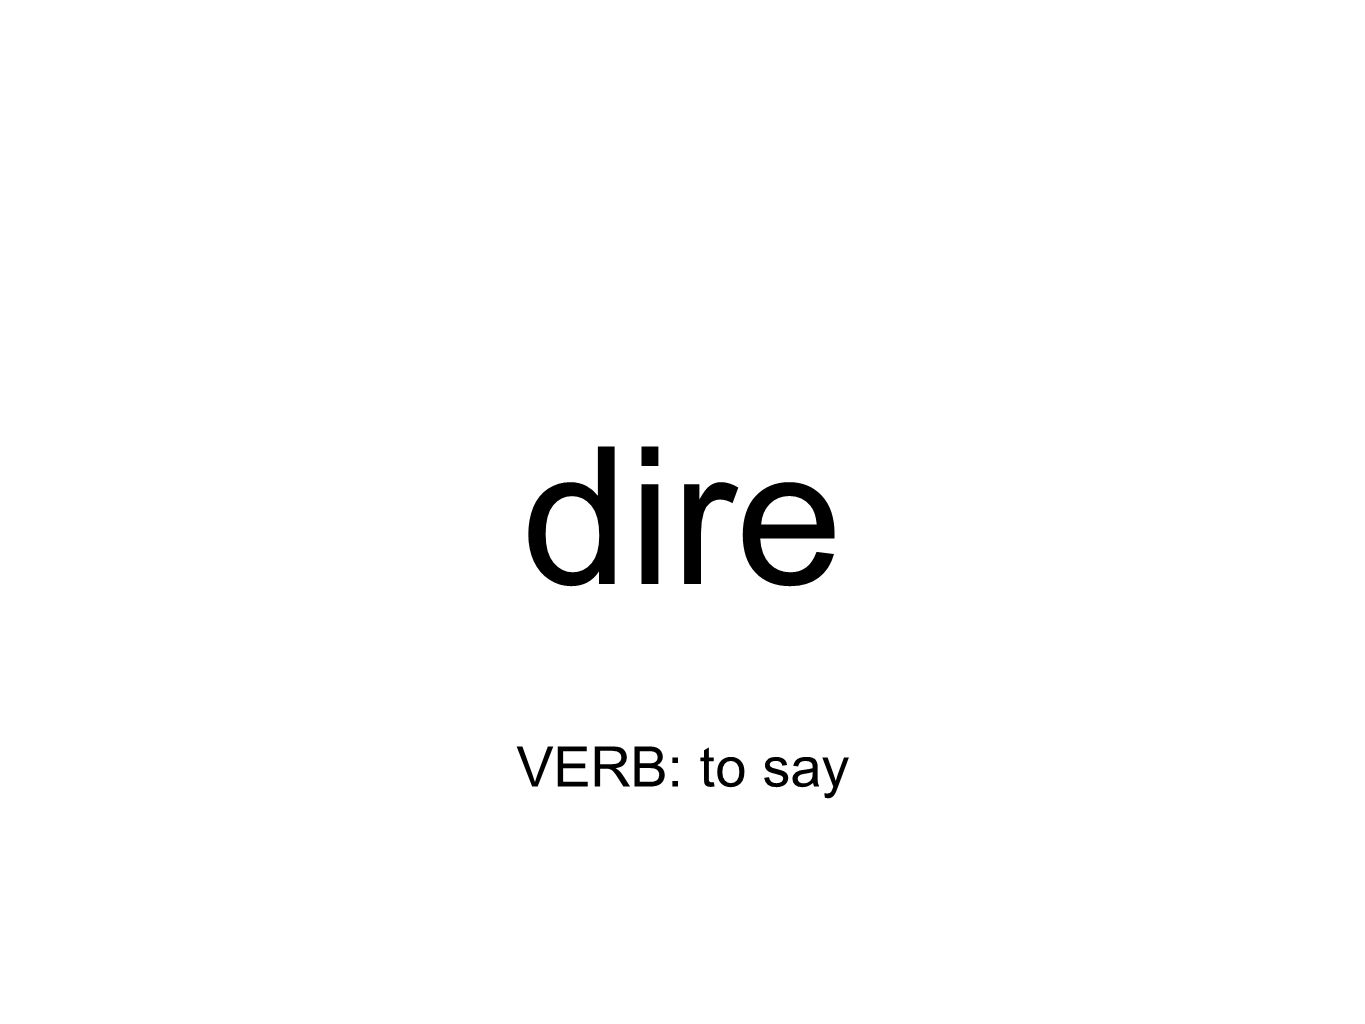 dire VERB: to say